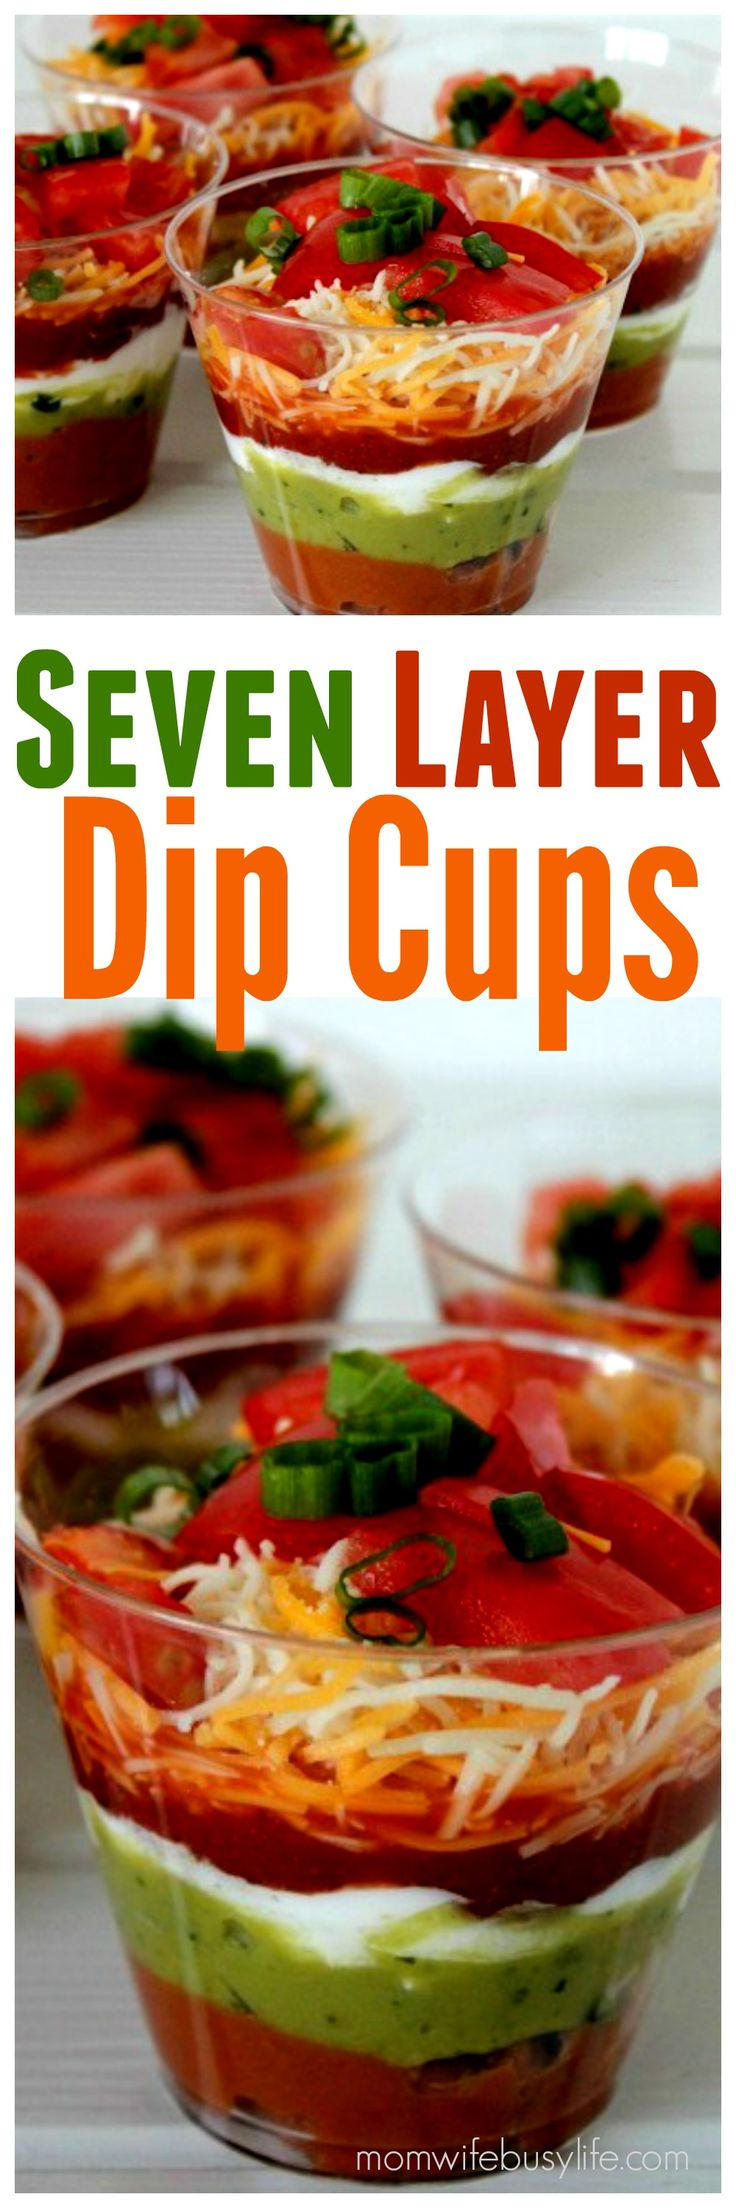 Seven Layer Dip Cups | Appetizer Recipes | 7 Layer Taco Dip